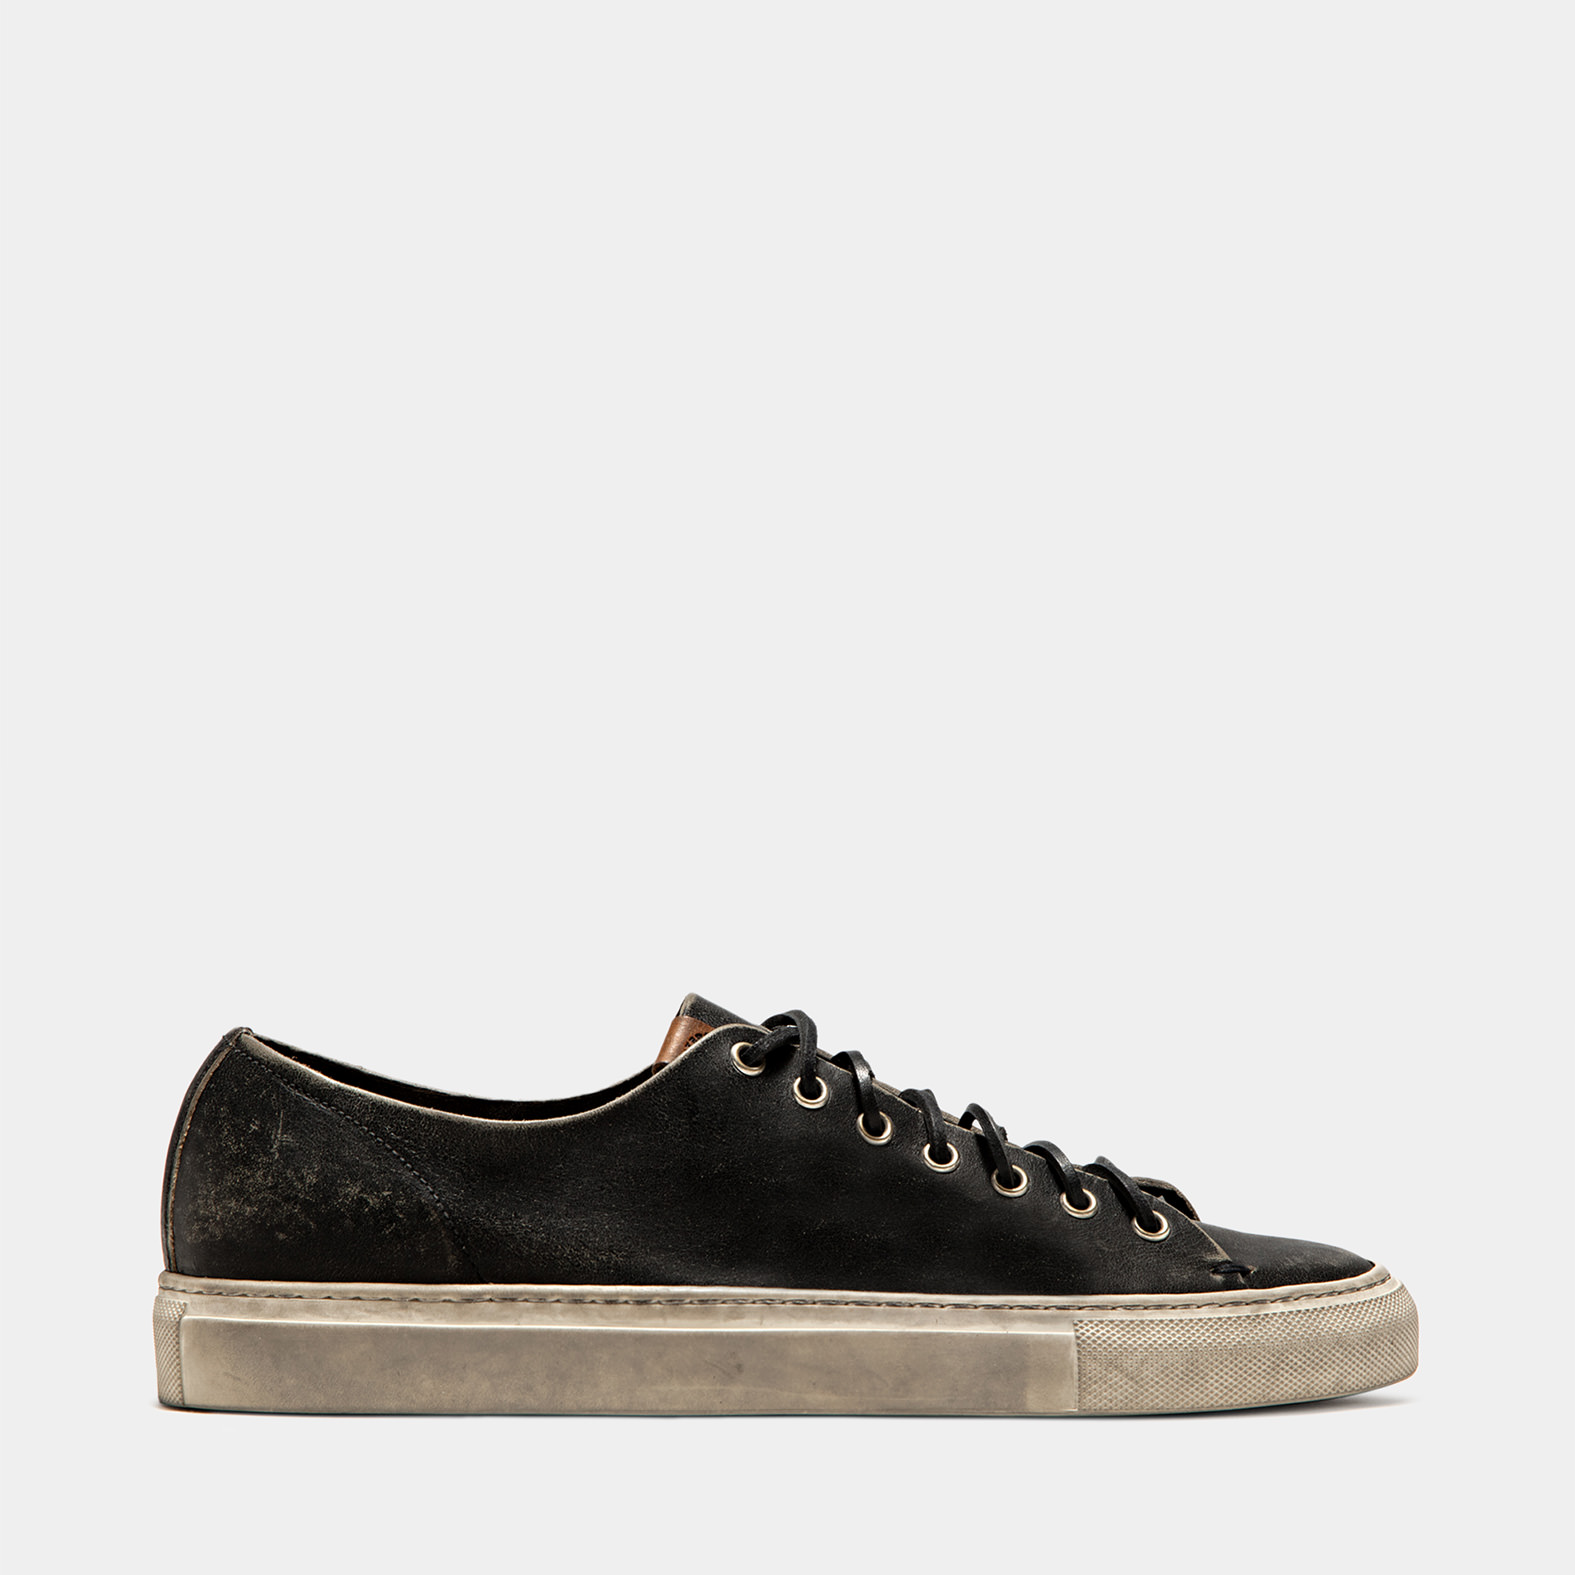 BUTTERO: BLACK USED EFFECT LEATHER TANINO LOW TOP SNEAKERS